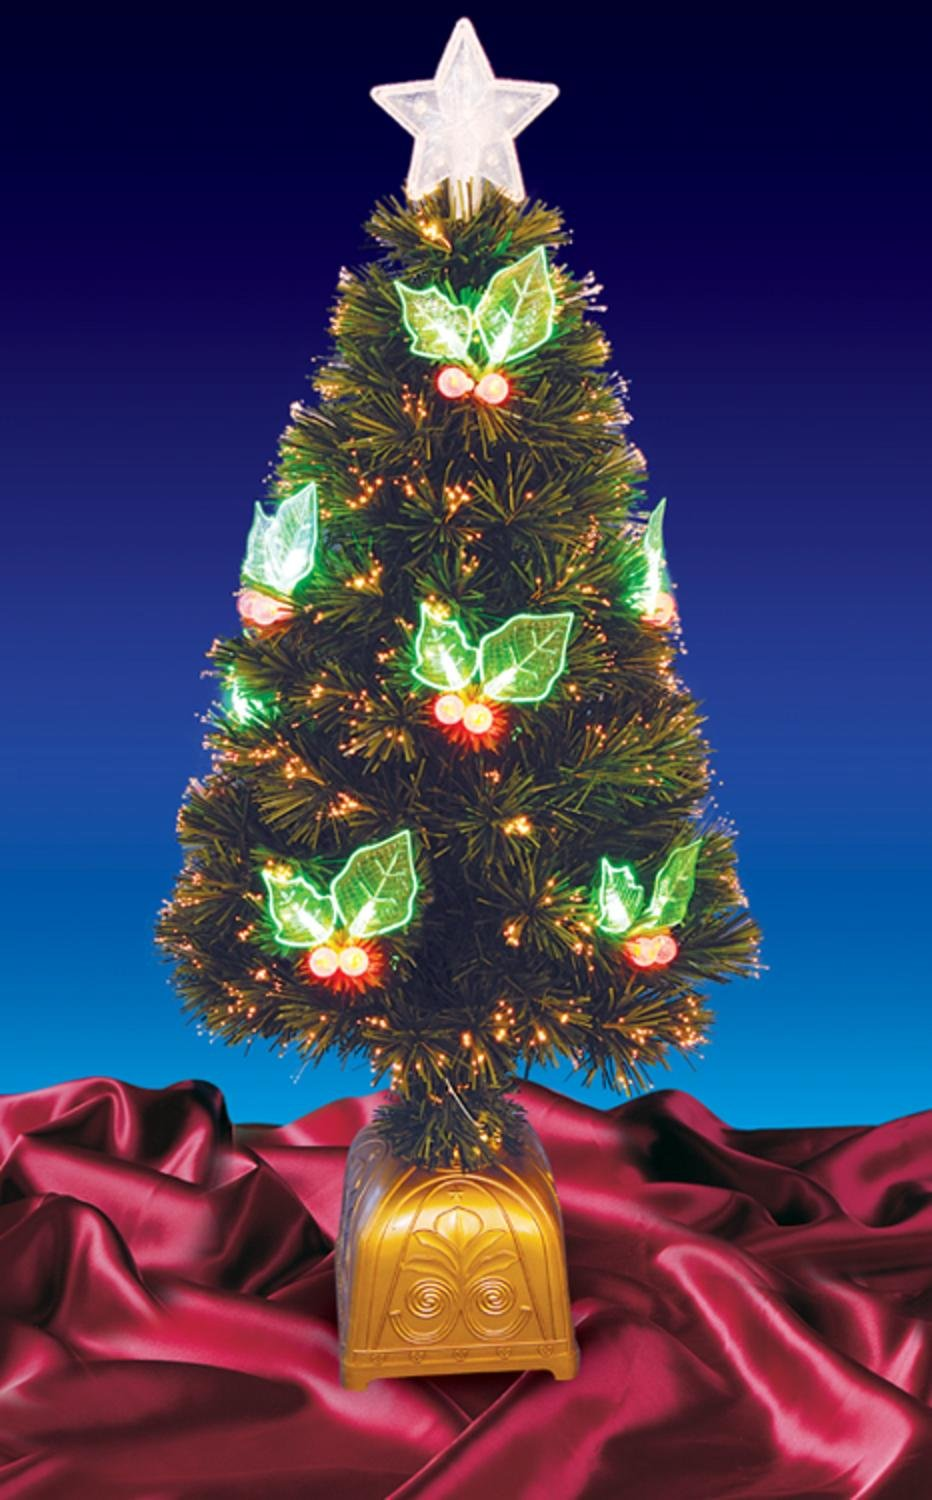 3 Foot Fiber Optic Christmas Trees. Making Christmas Decorations Using Sequins. Christmas Light Decorating Ideas Bedroom. Christmas Decorations Sale In Bangalore. Unique Decorations For Christmas Trees. Christmas Decorations Photo Frames. Easy Christmas Crafts Religious. Christmas Ornaments From China. Printable Christmas Ornaments For The Tree